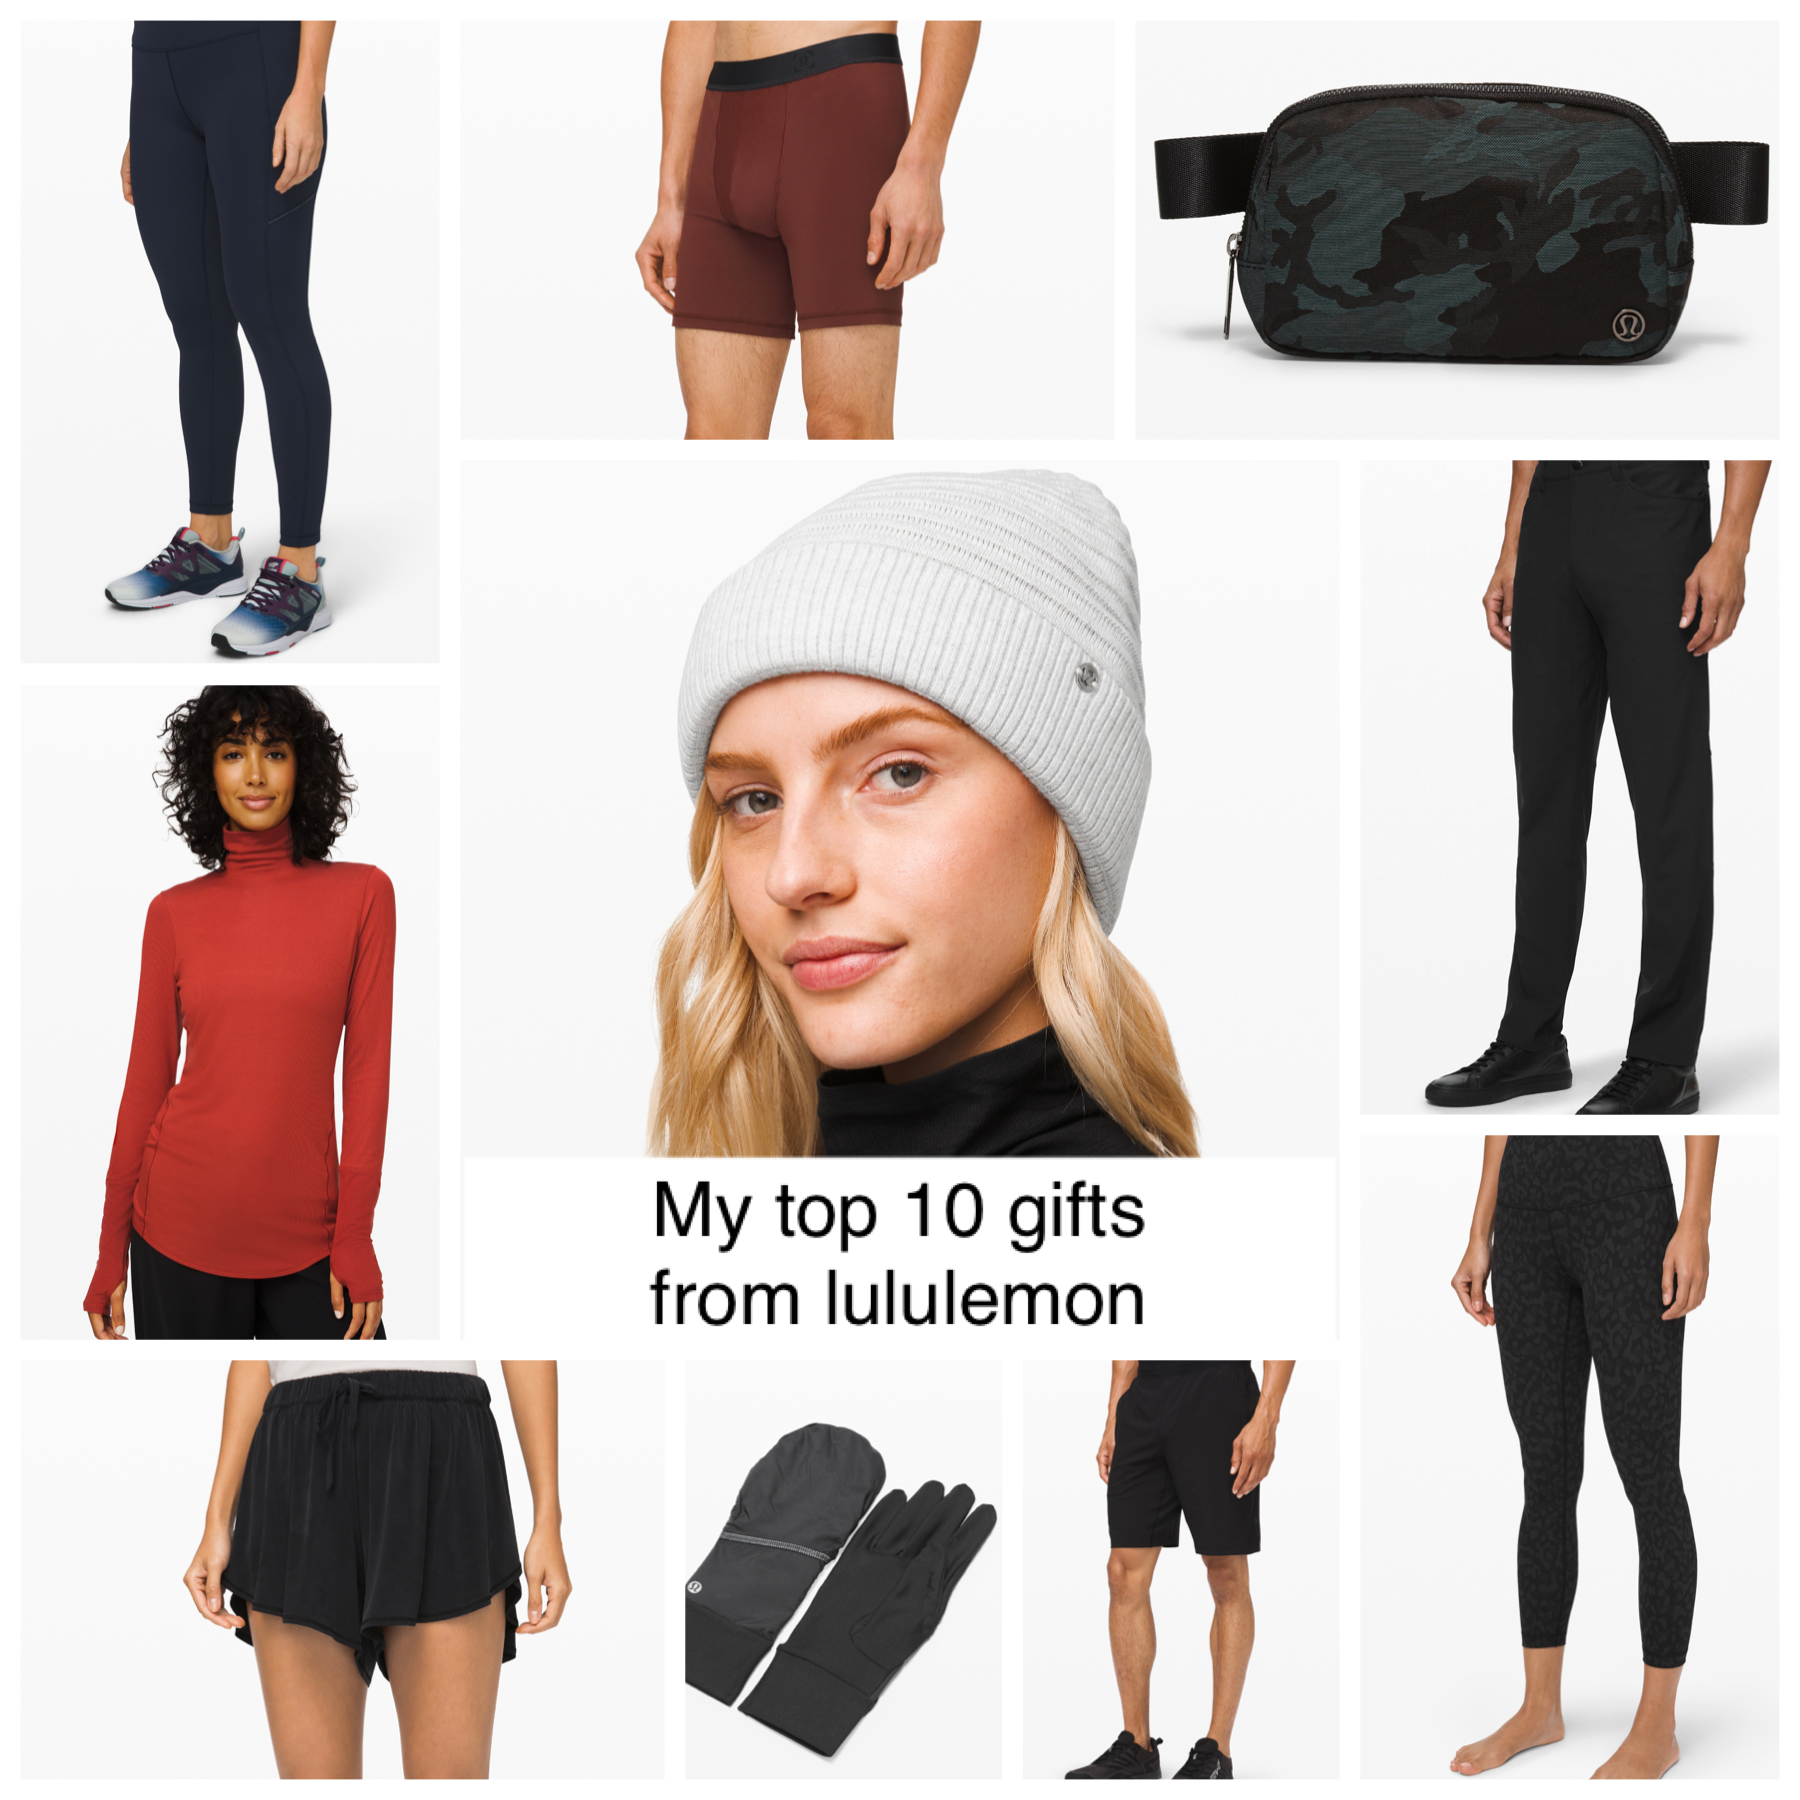 Top 10 Gifts from Lululemon